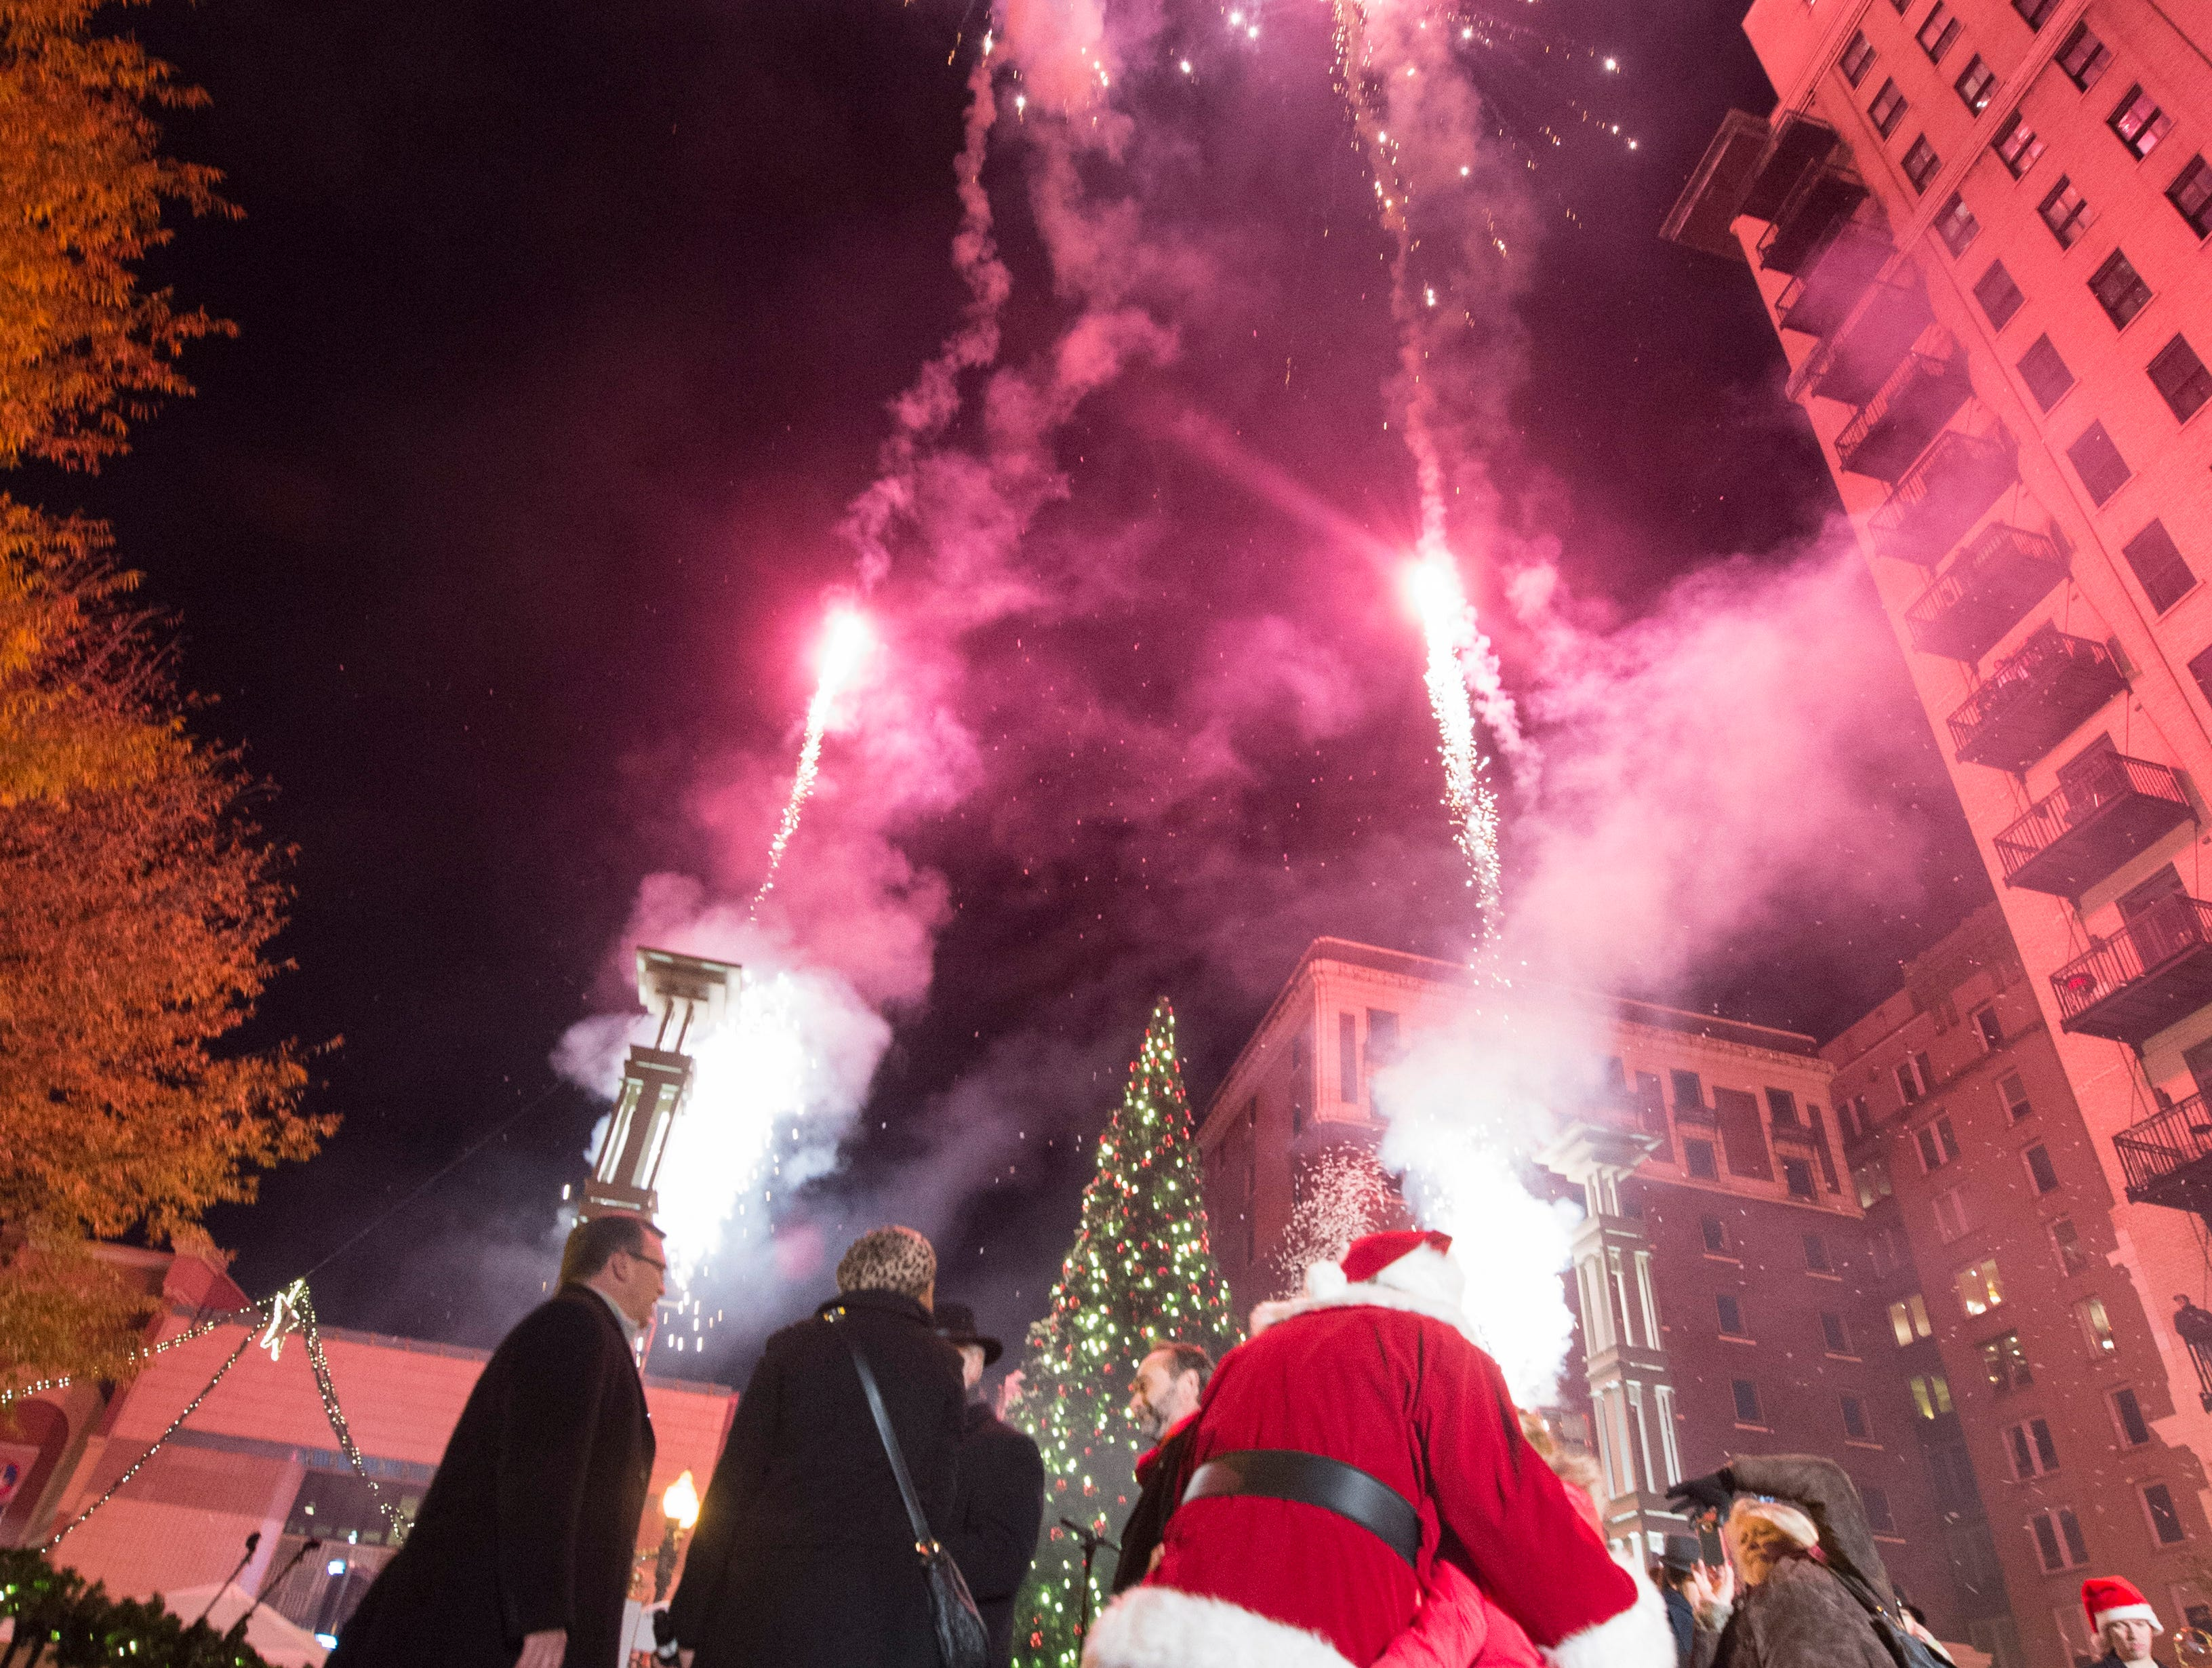 Fireworks shoot up into the sky over downtown Knoxville after the lighting of a 38-foot tall Christmas tree in Krutch Park during Christmas in the City festivities on Friday, Nov. 28, 2014.